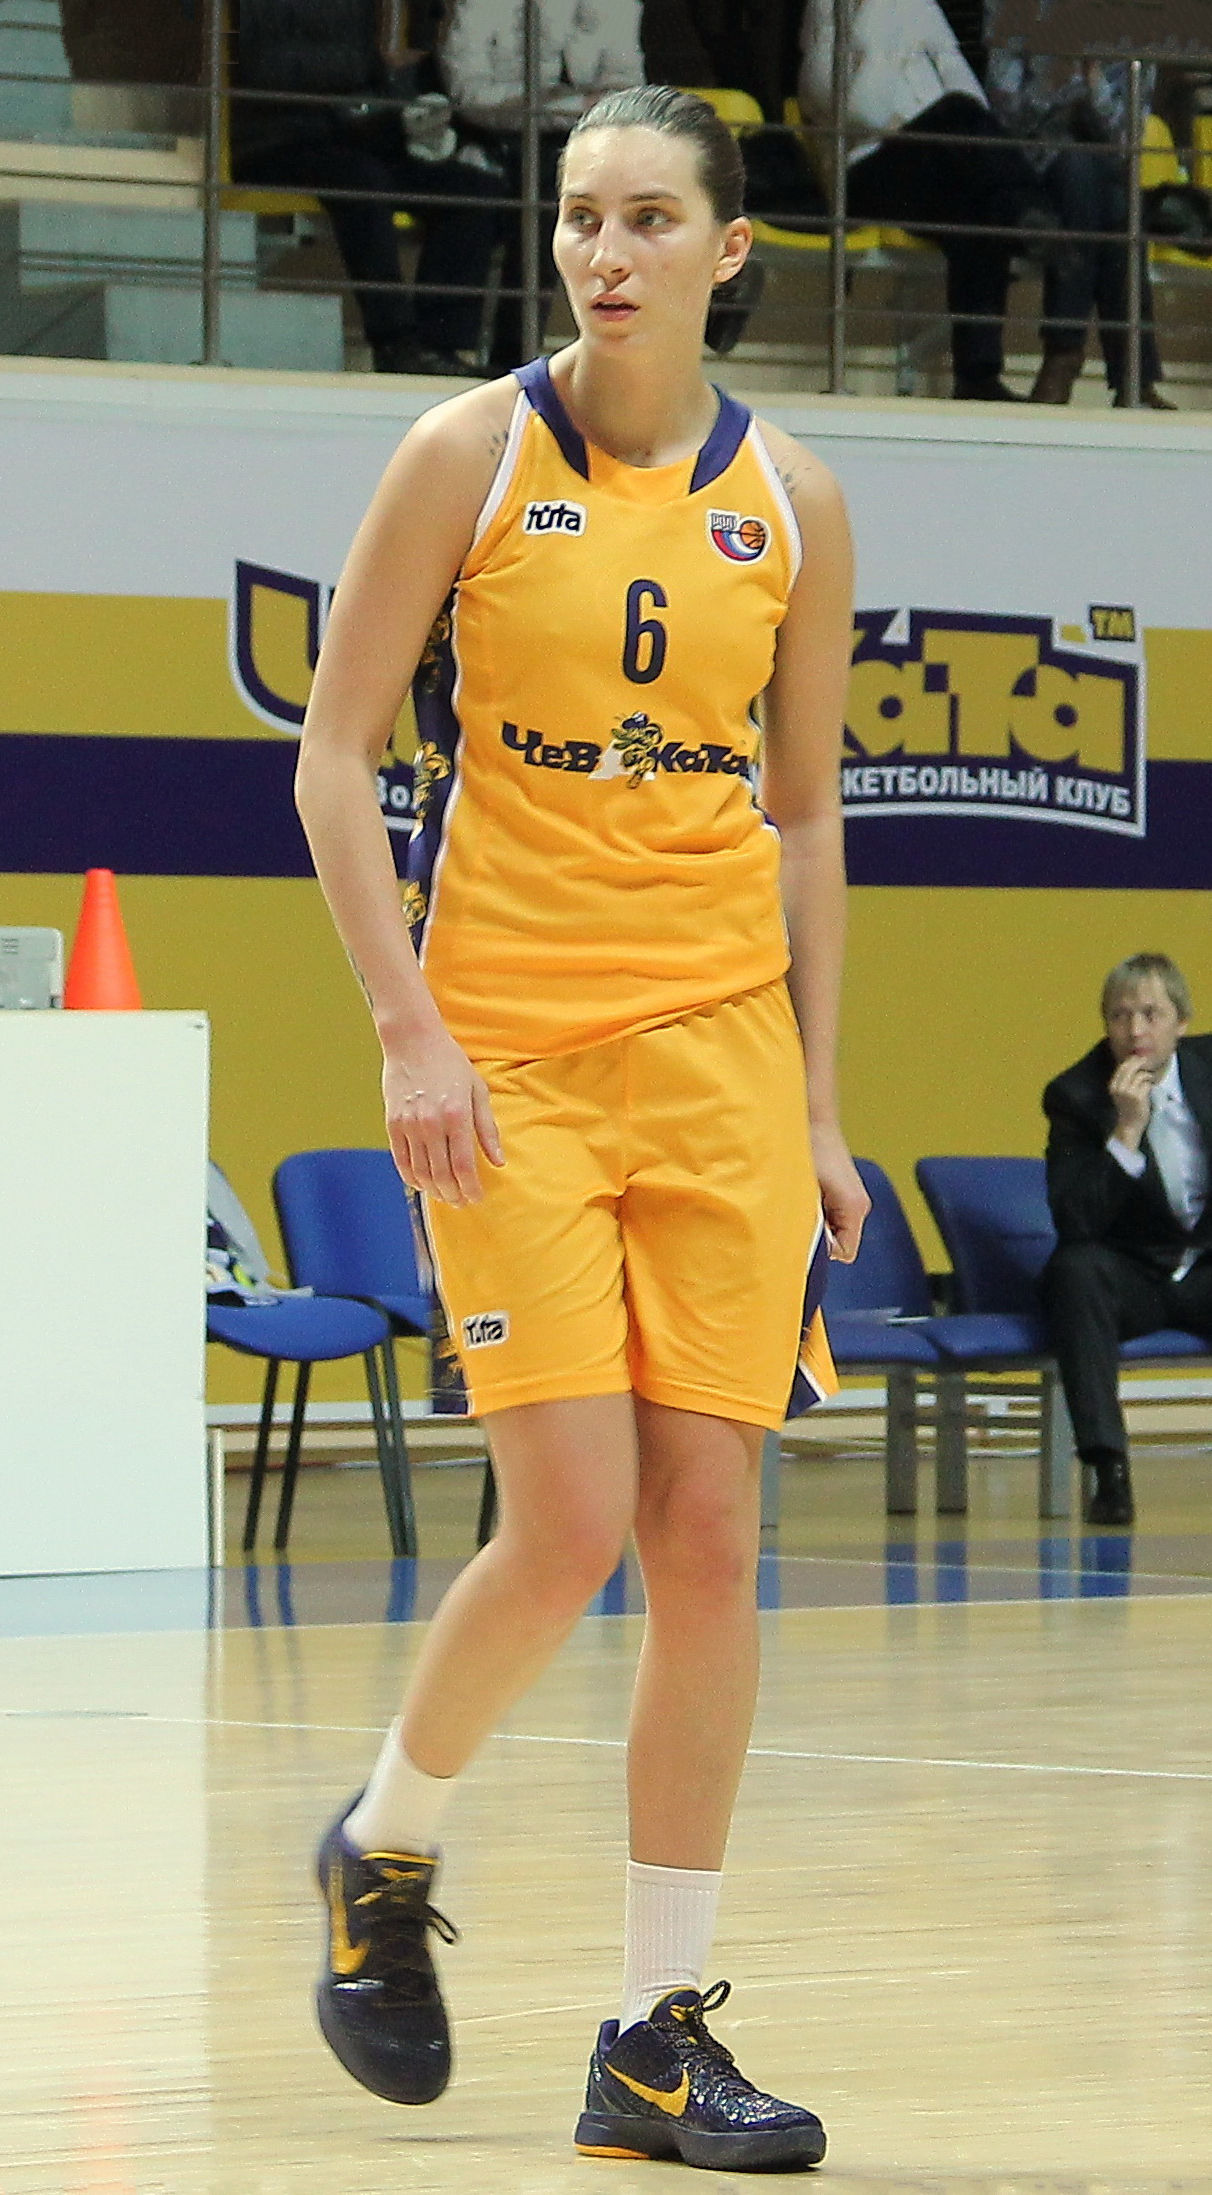 Photo of Katsiaryna Snytsina: Olympic basketball player